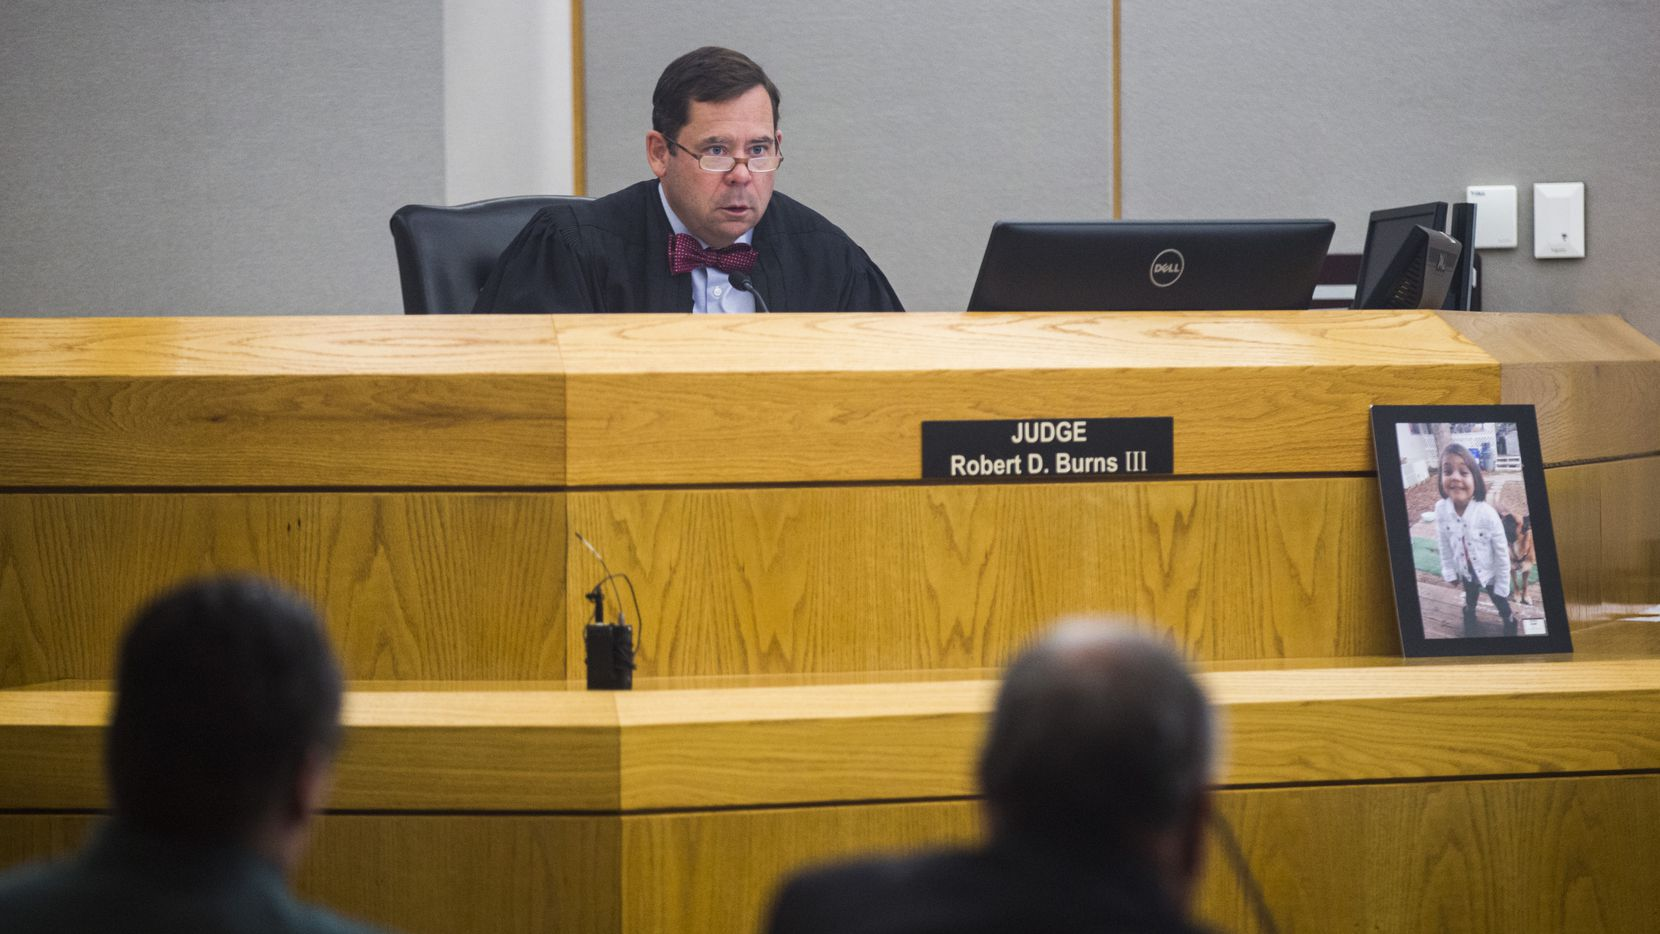 A photo of Leiliana Wright rested near Judge Robert D. Burns III during the final day of the trial of Charles Phifer (left), who was found guilty of capital murder in the March 2016 beating death of the 4-year-old.